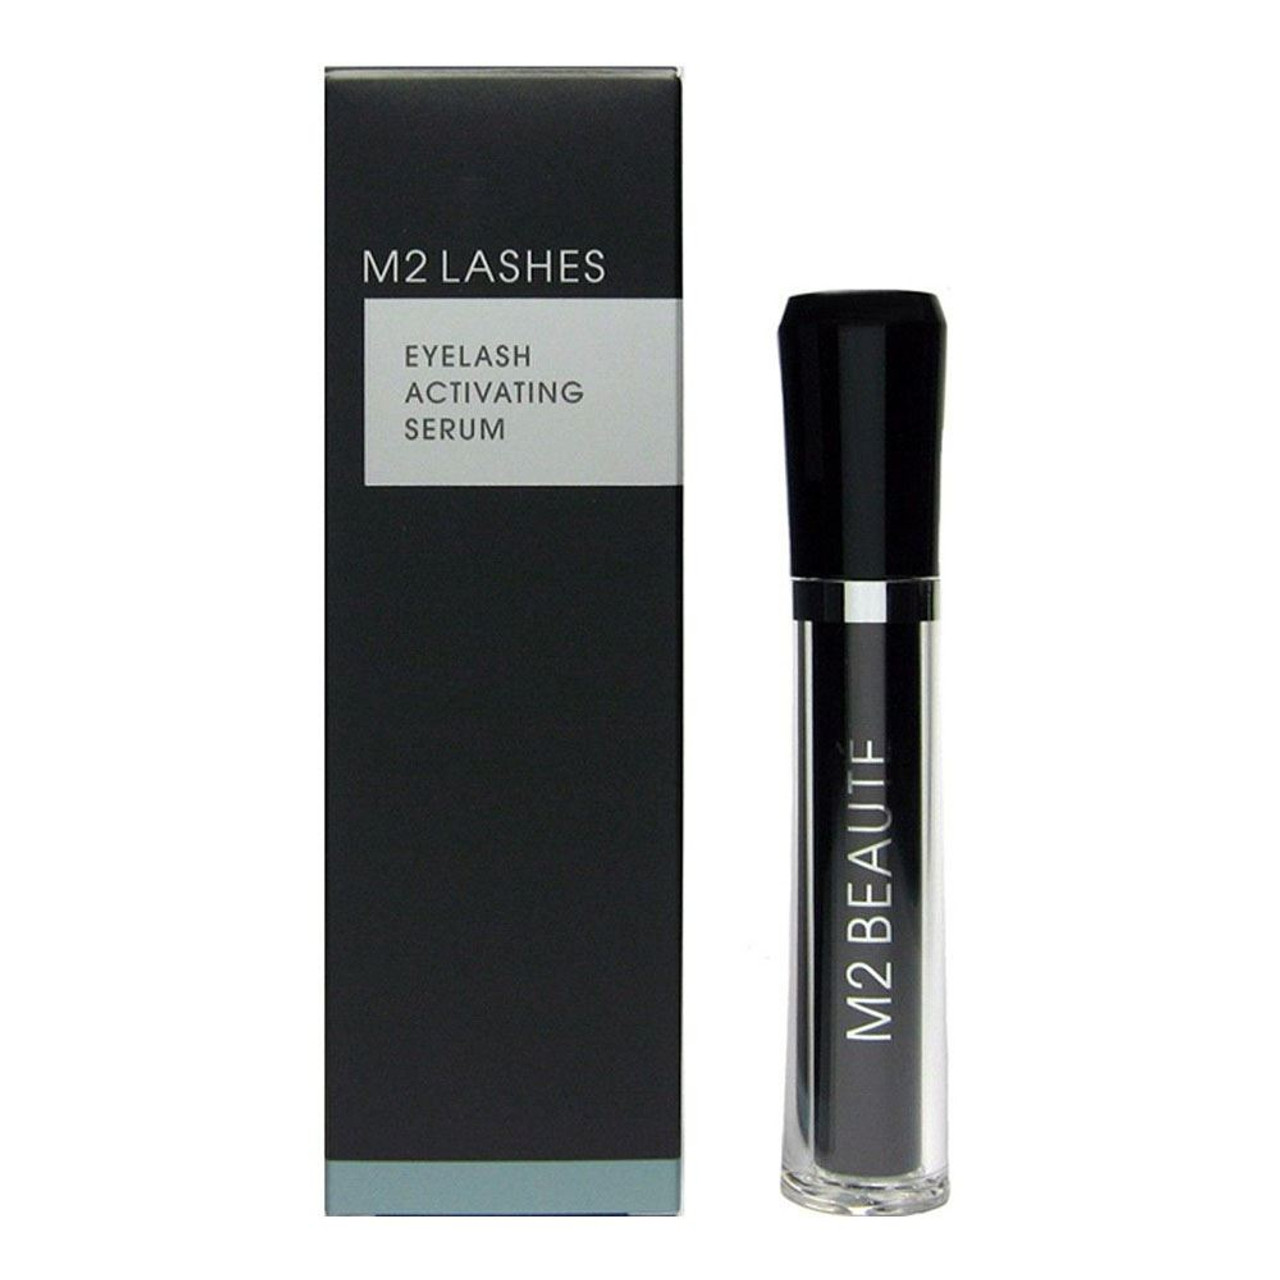 6f92630980c M2 BEAUTÉ Eyelash Activating Serum 5ml | TreatYourSkin